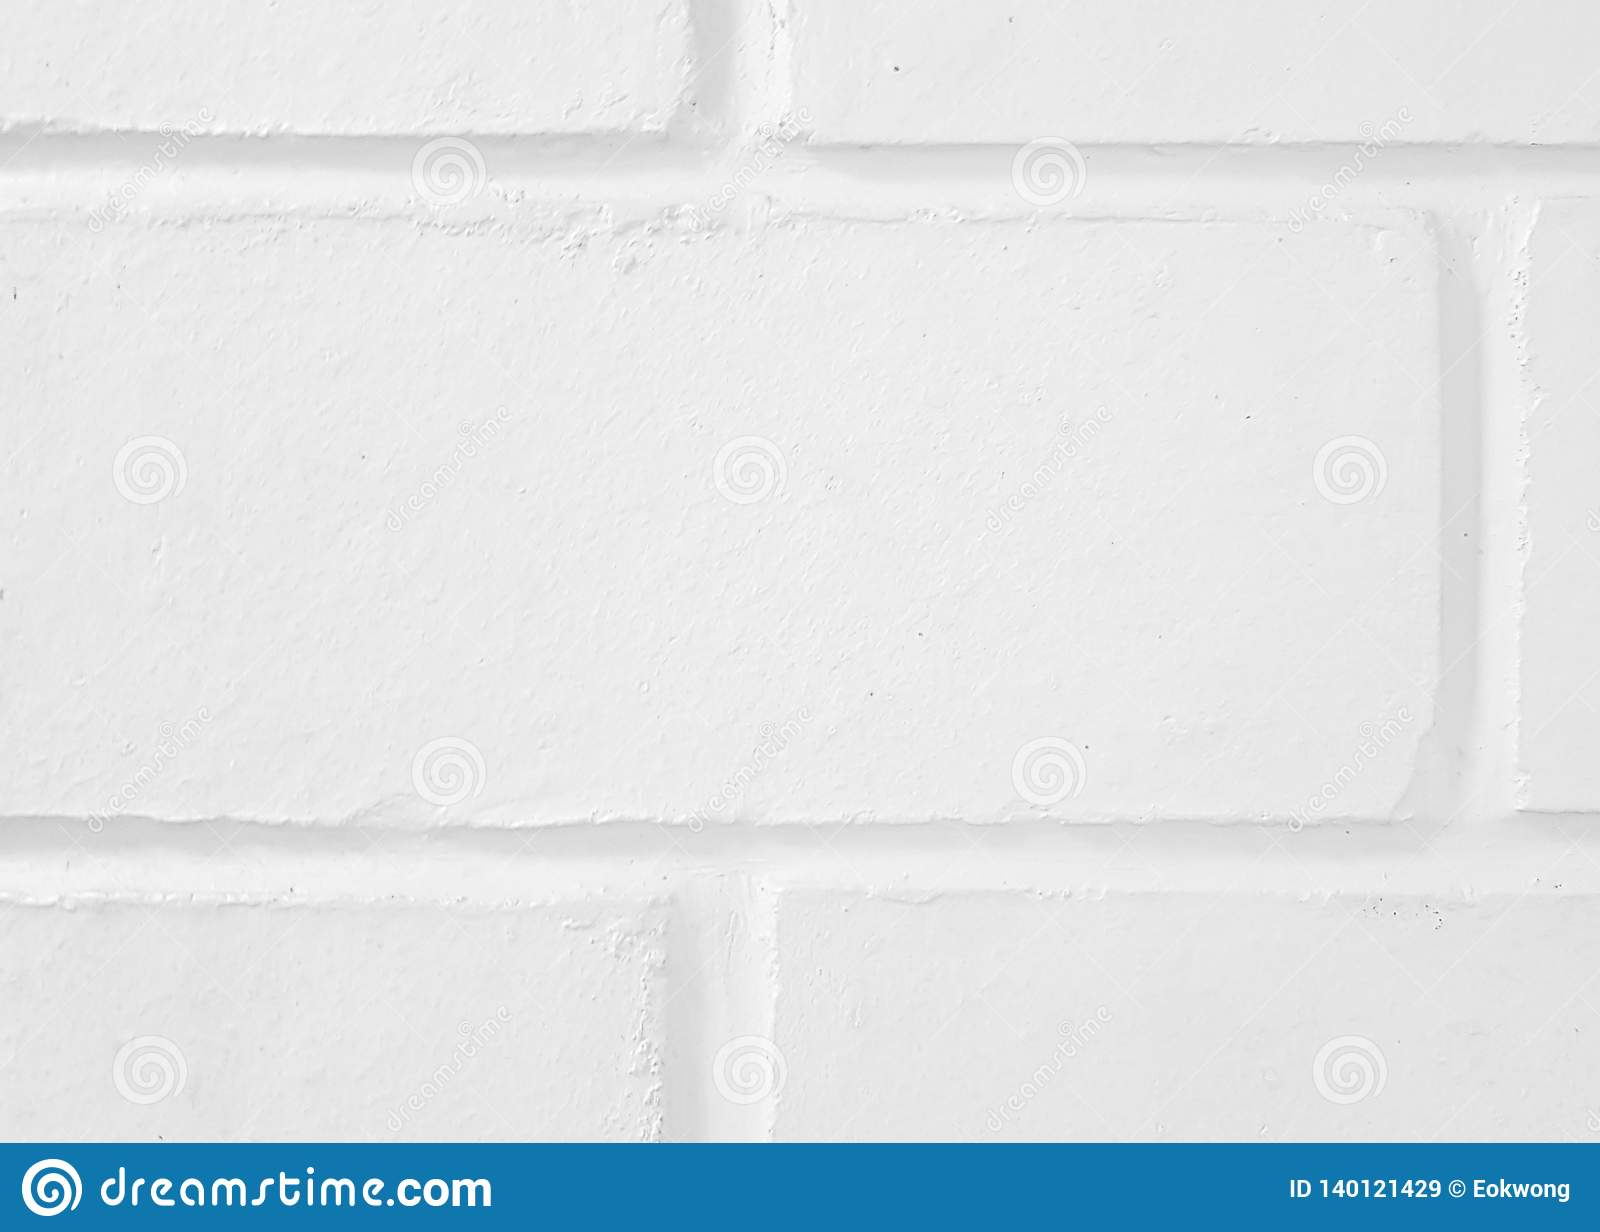 185 Painted Cinder Block Wall Photos Free Royalty Free Stock Photos From Dreamstime